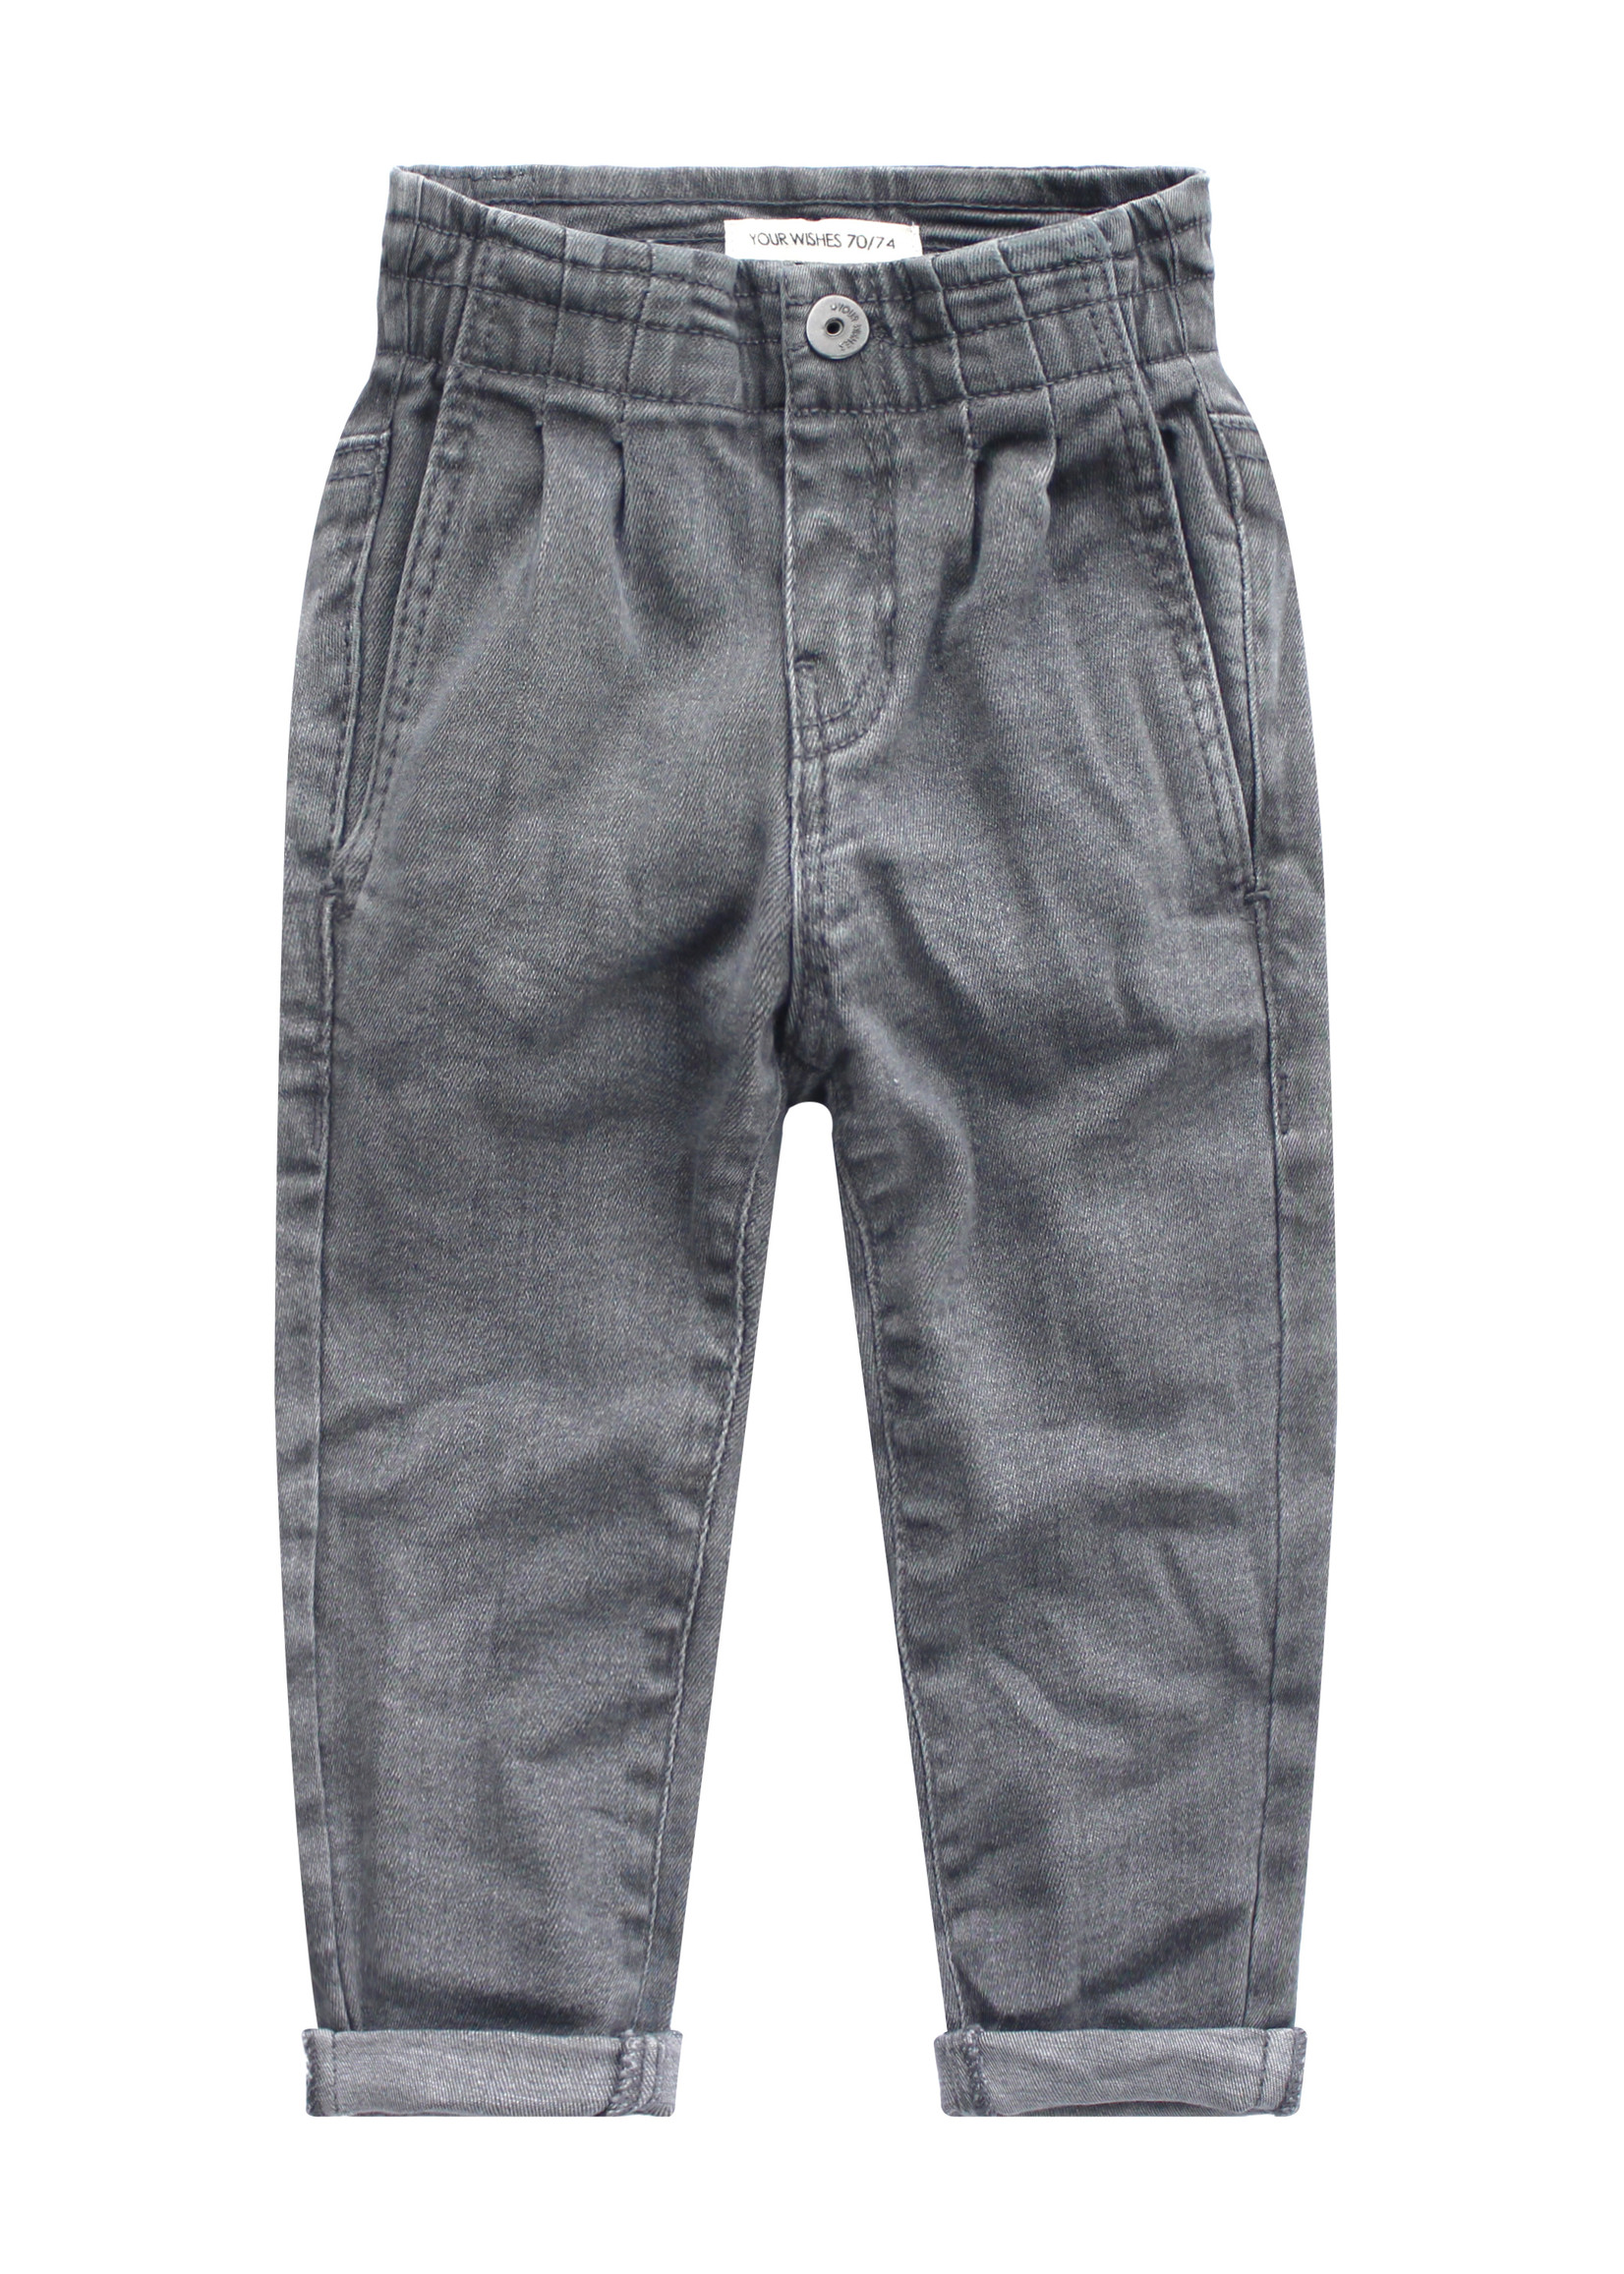 Your Wishes YW - Denim | Paperbag Jeans